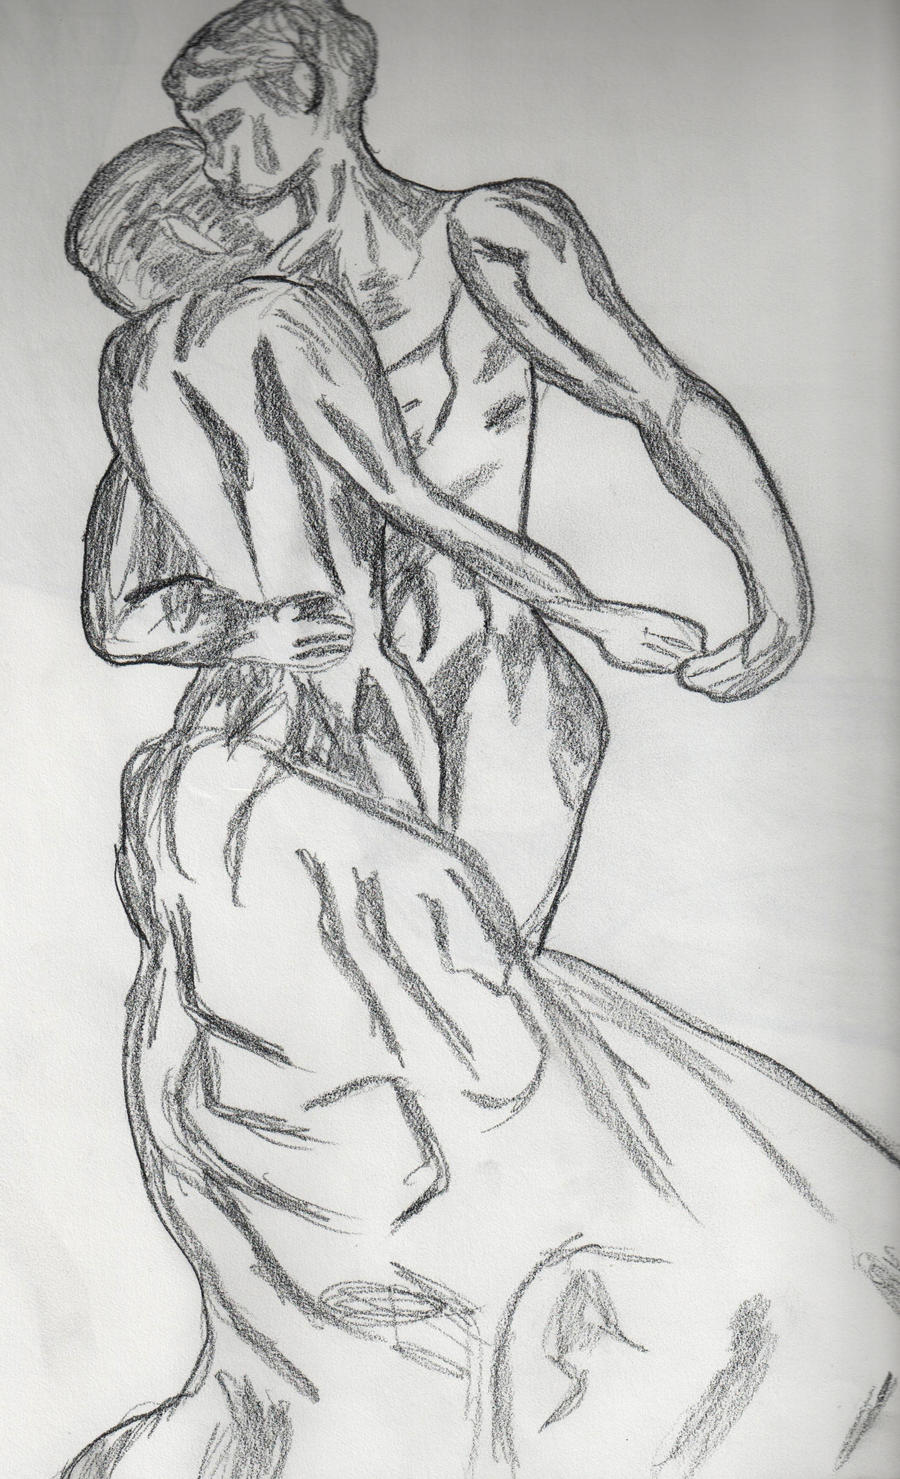 Camille claudel sketch by respect knuckles on deviantart - Camille dessin ...